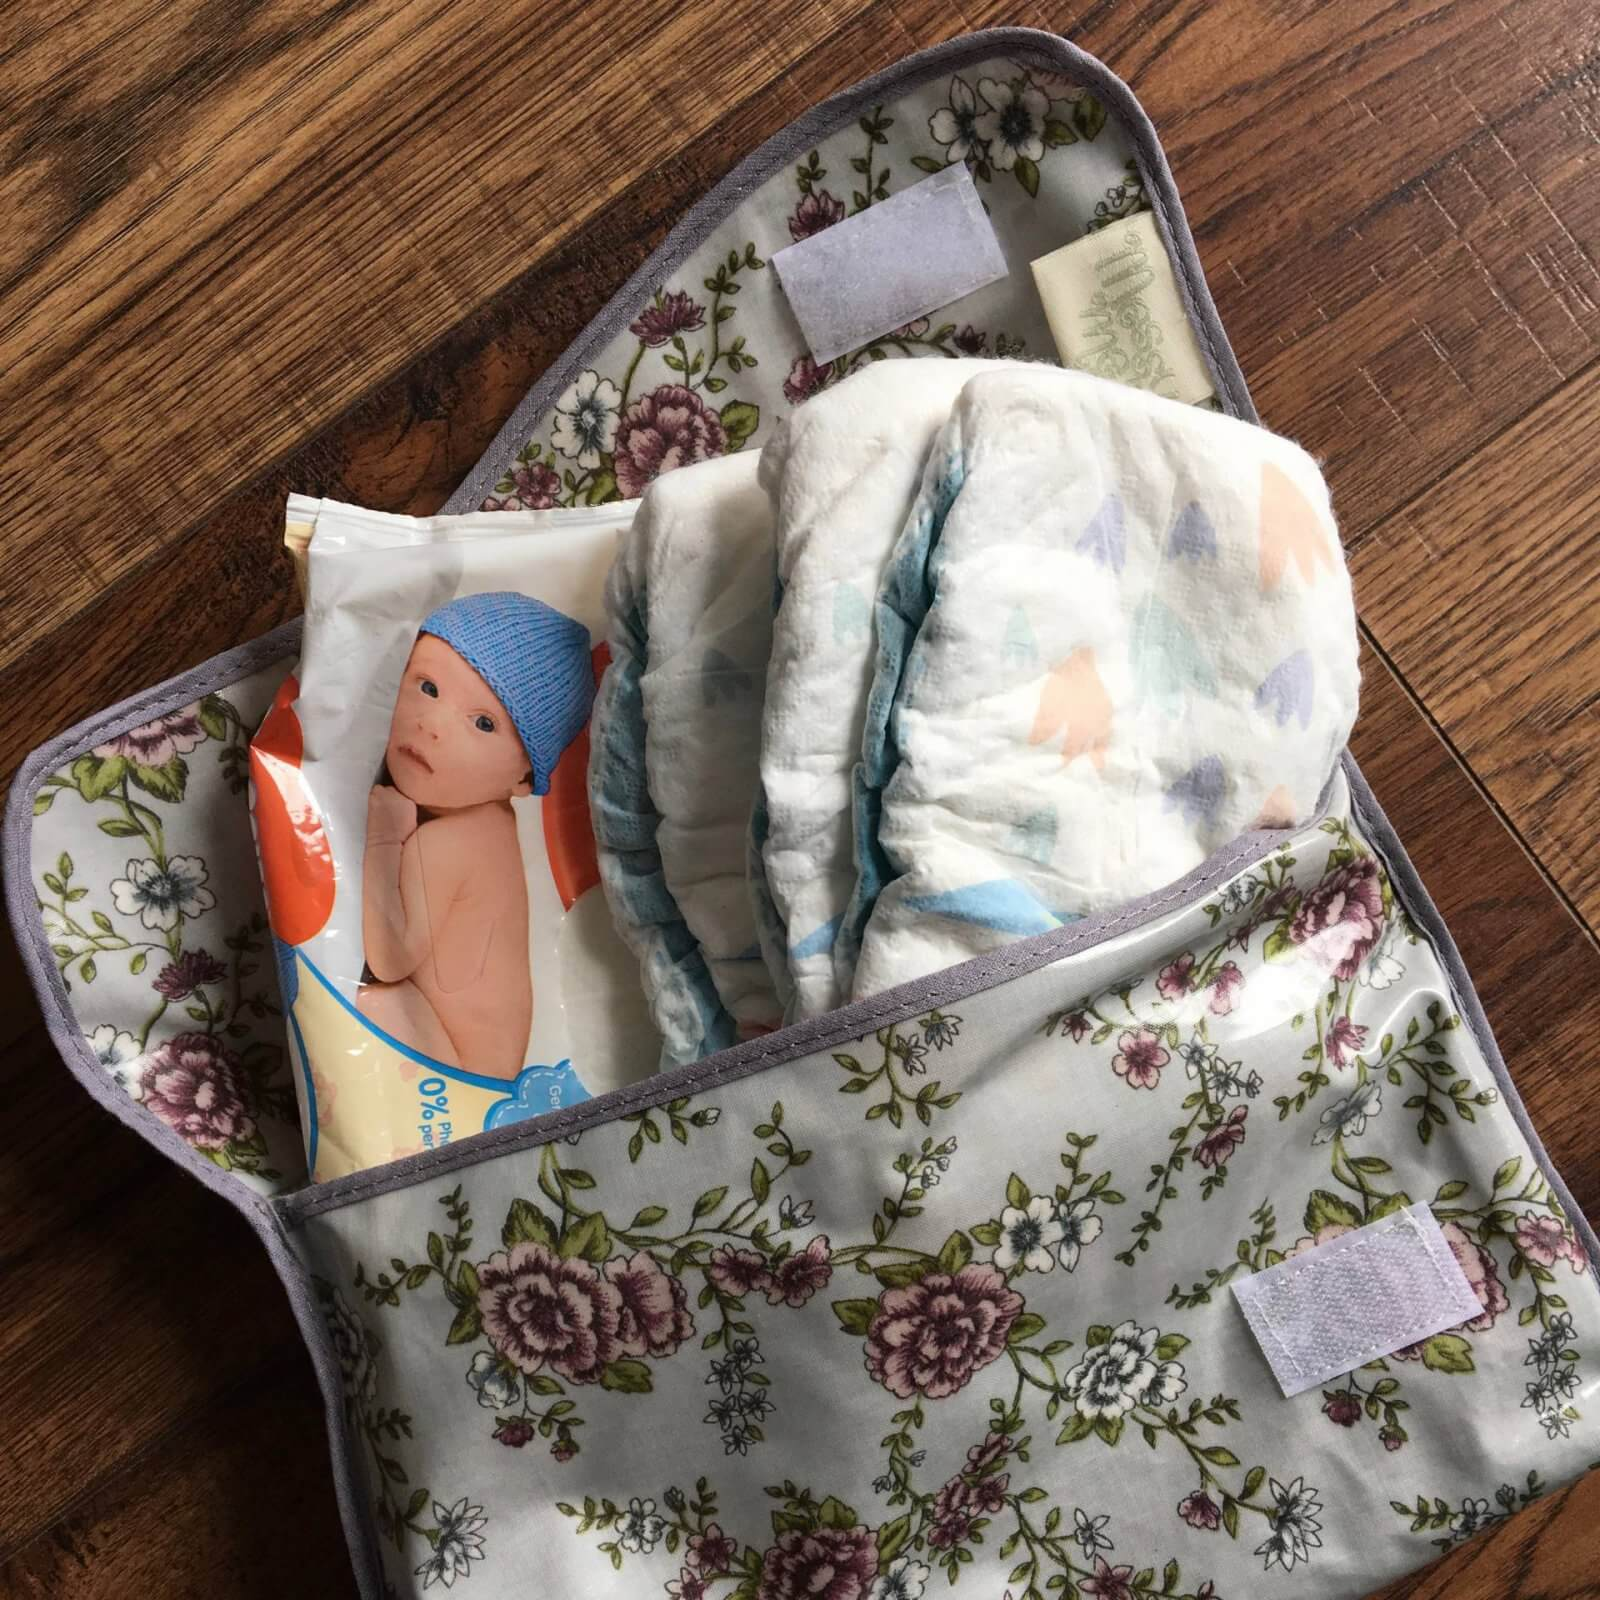 Nappy Clutch by Messy Me – Review